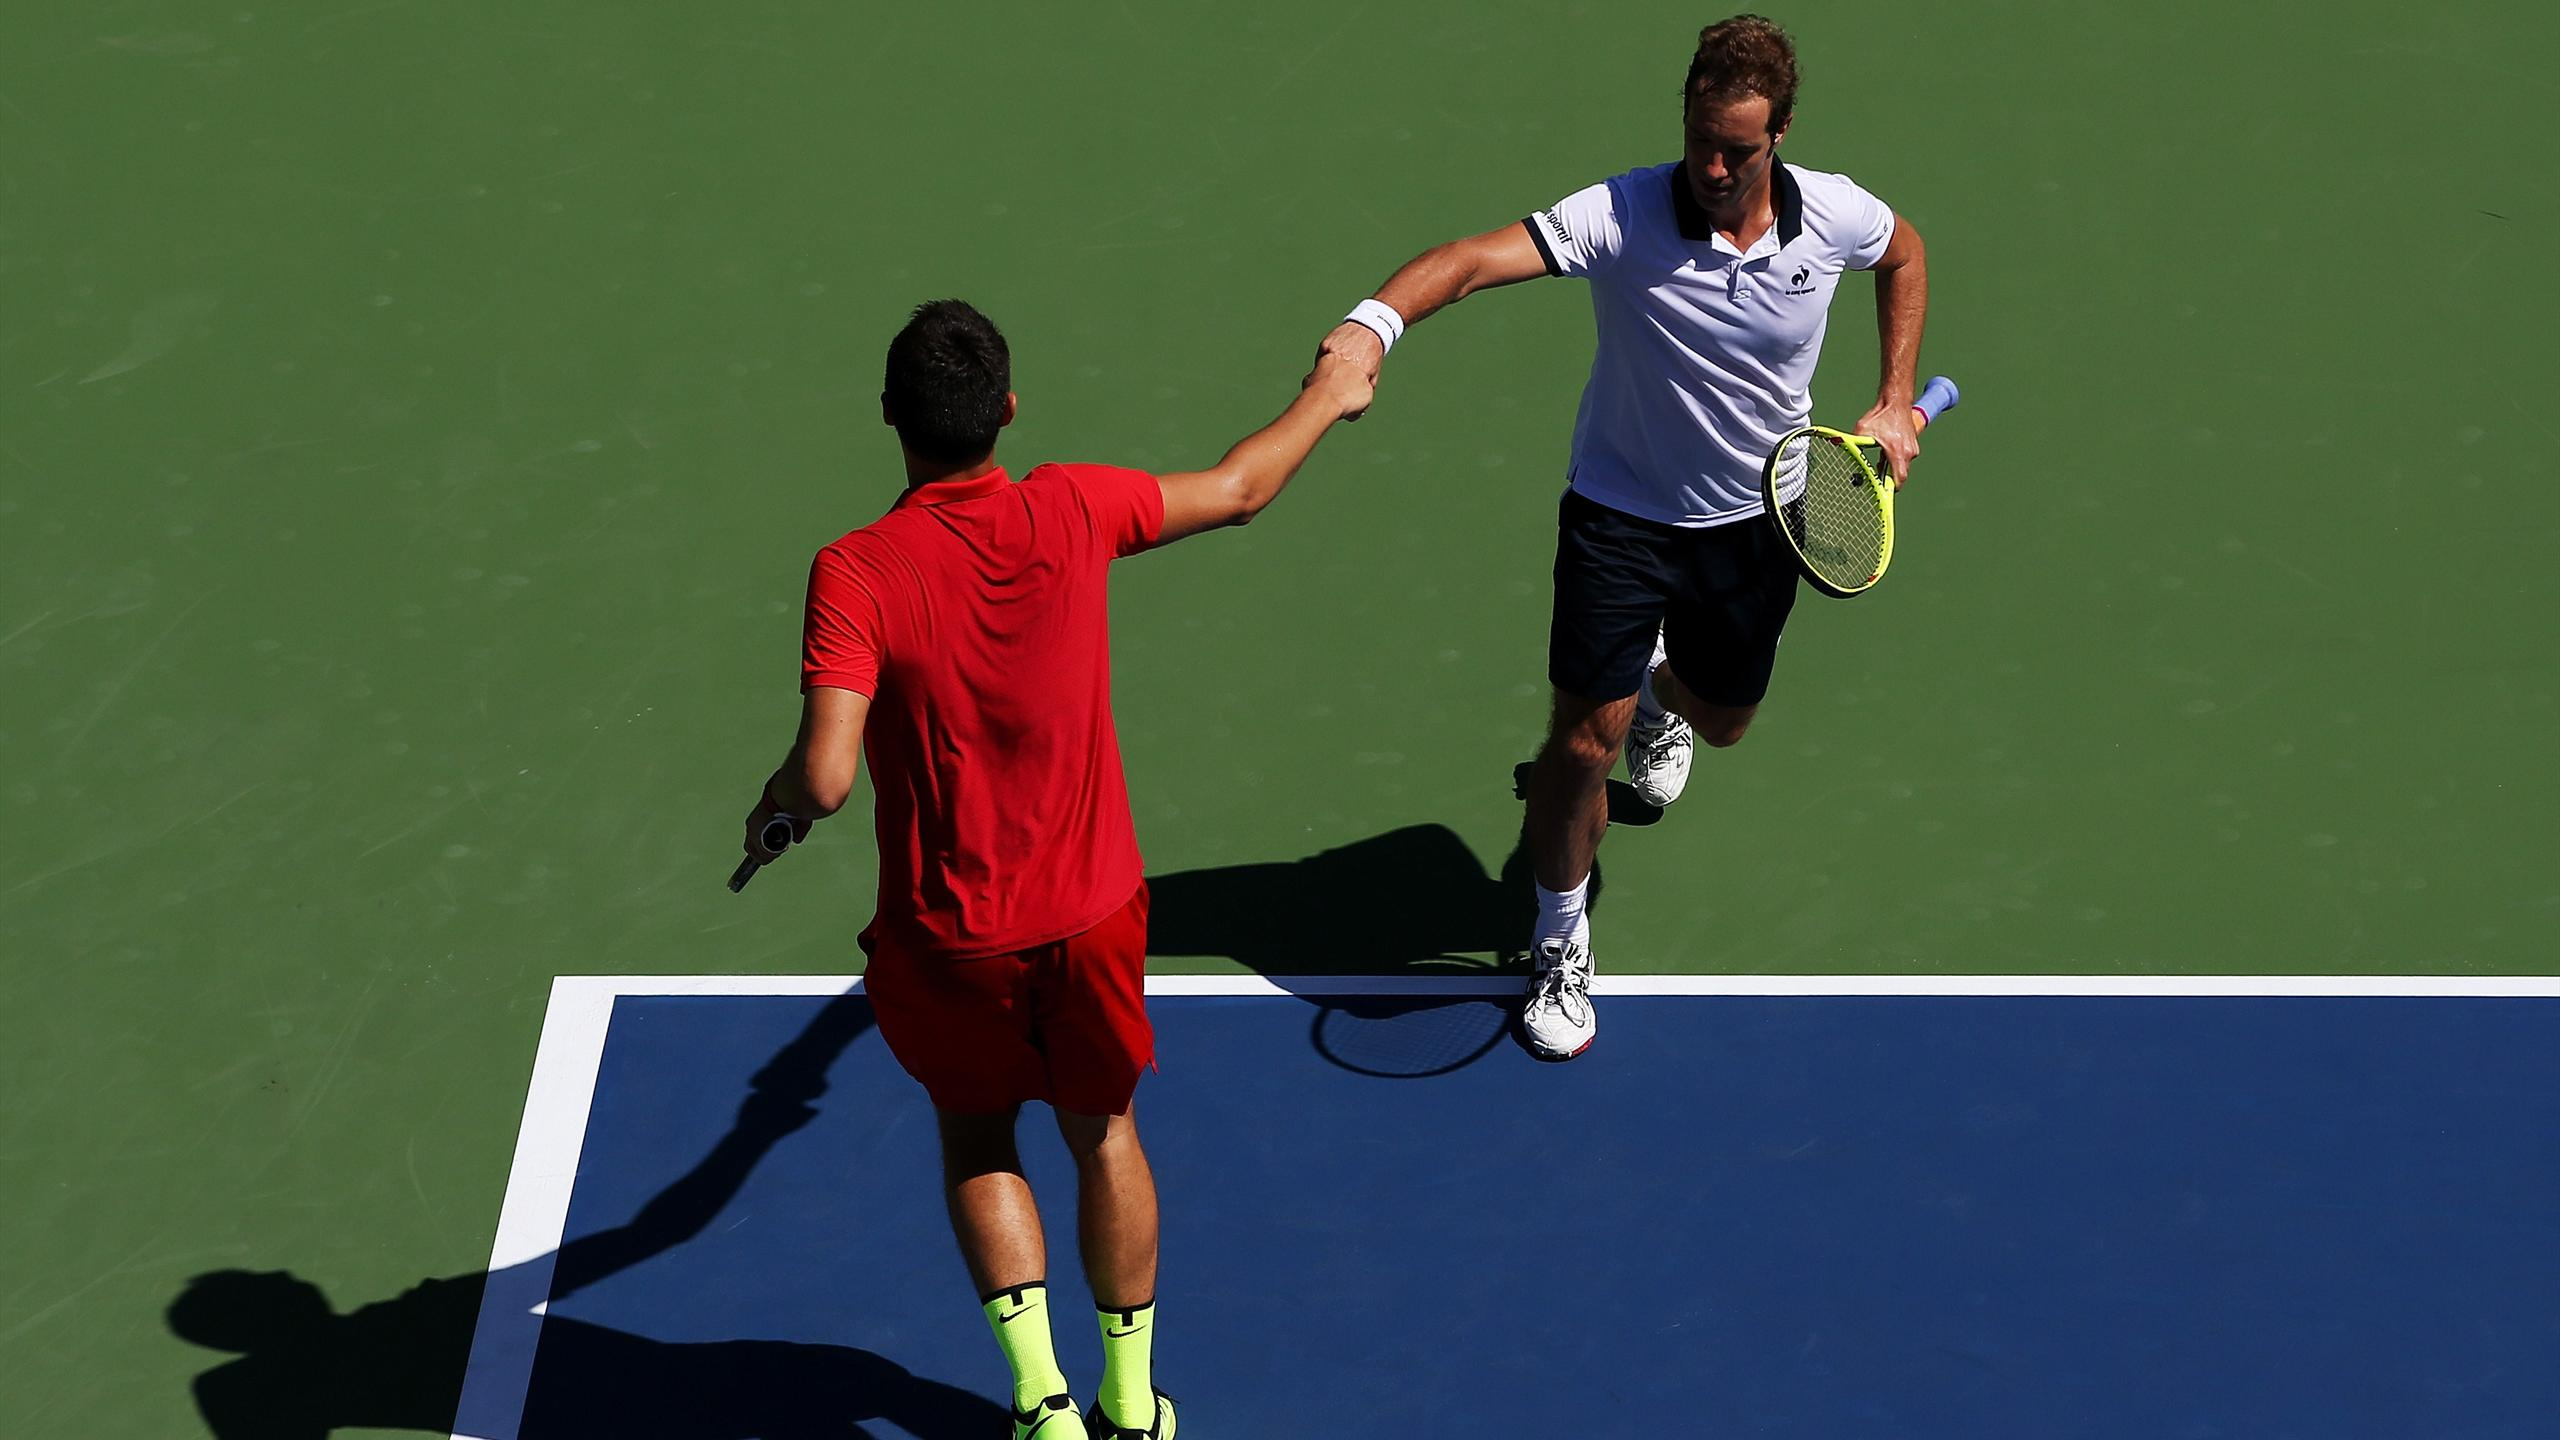 Bernard Tomic et Richard Gasquet lors de l'US Open 2015